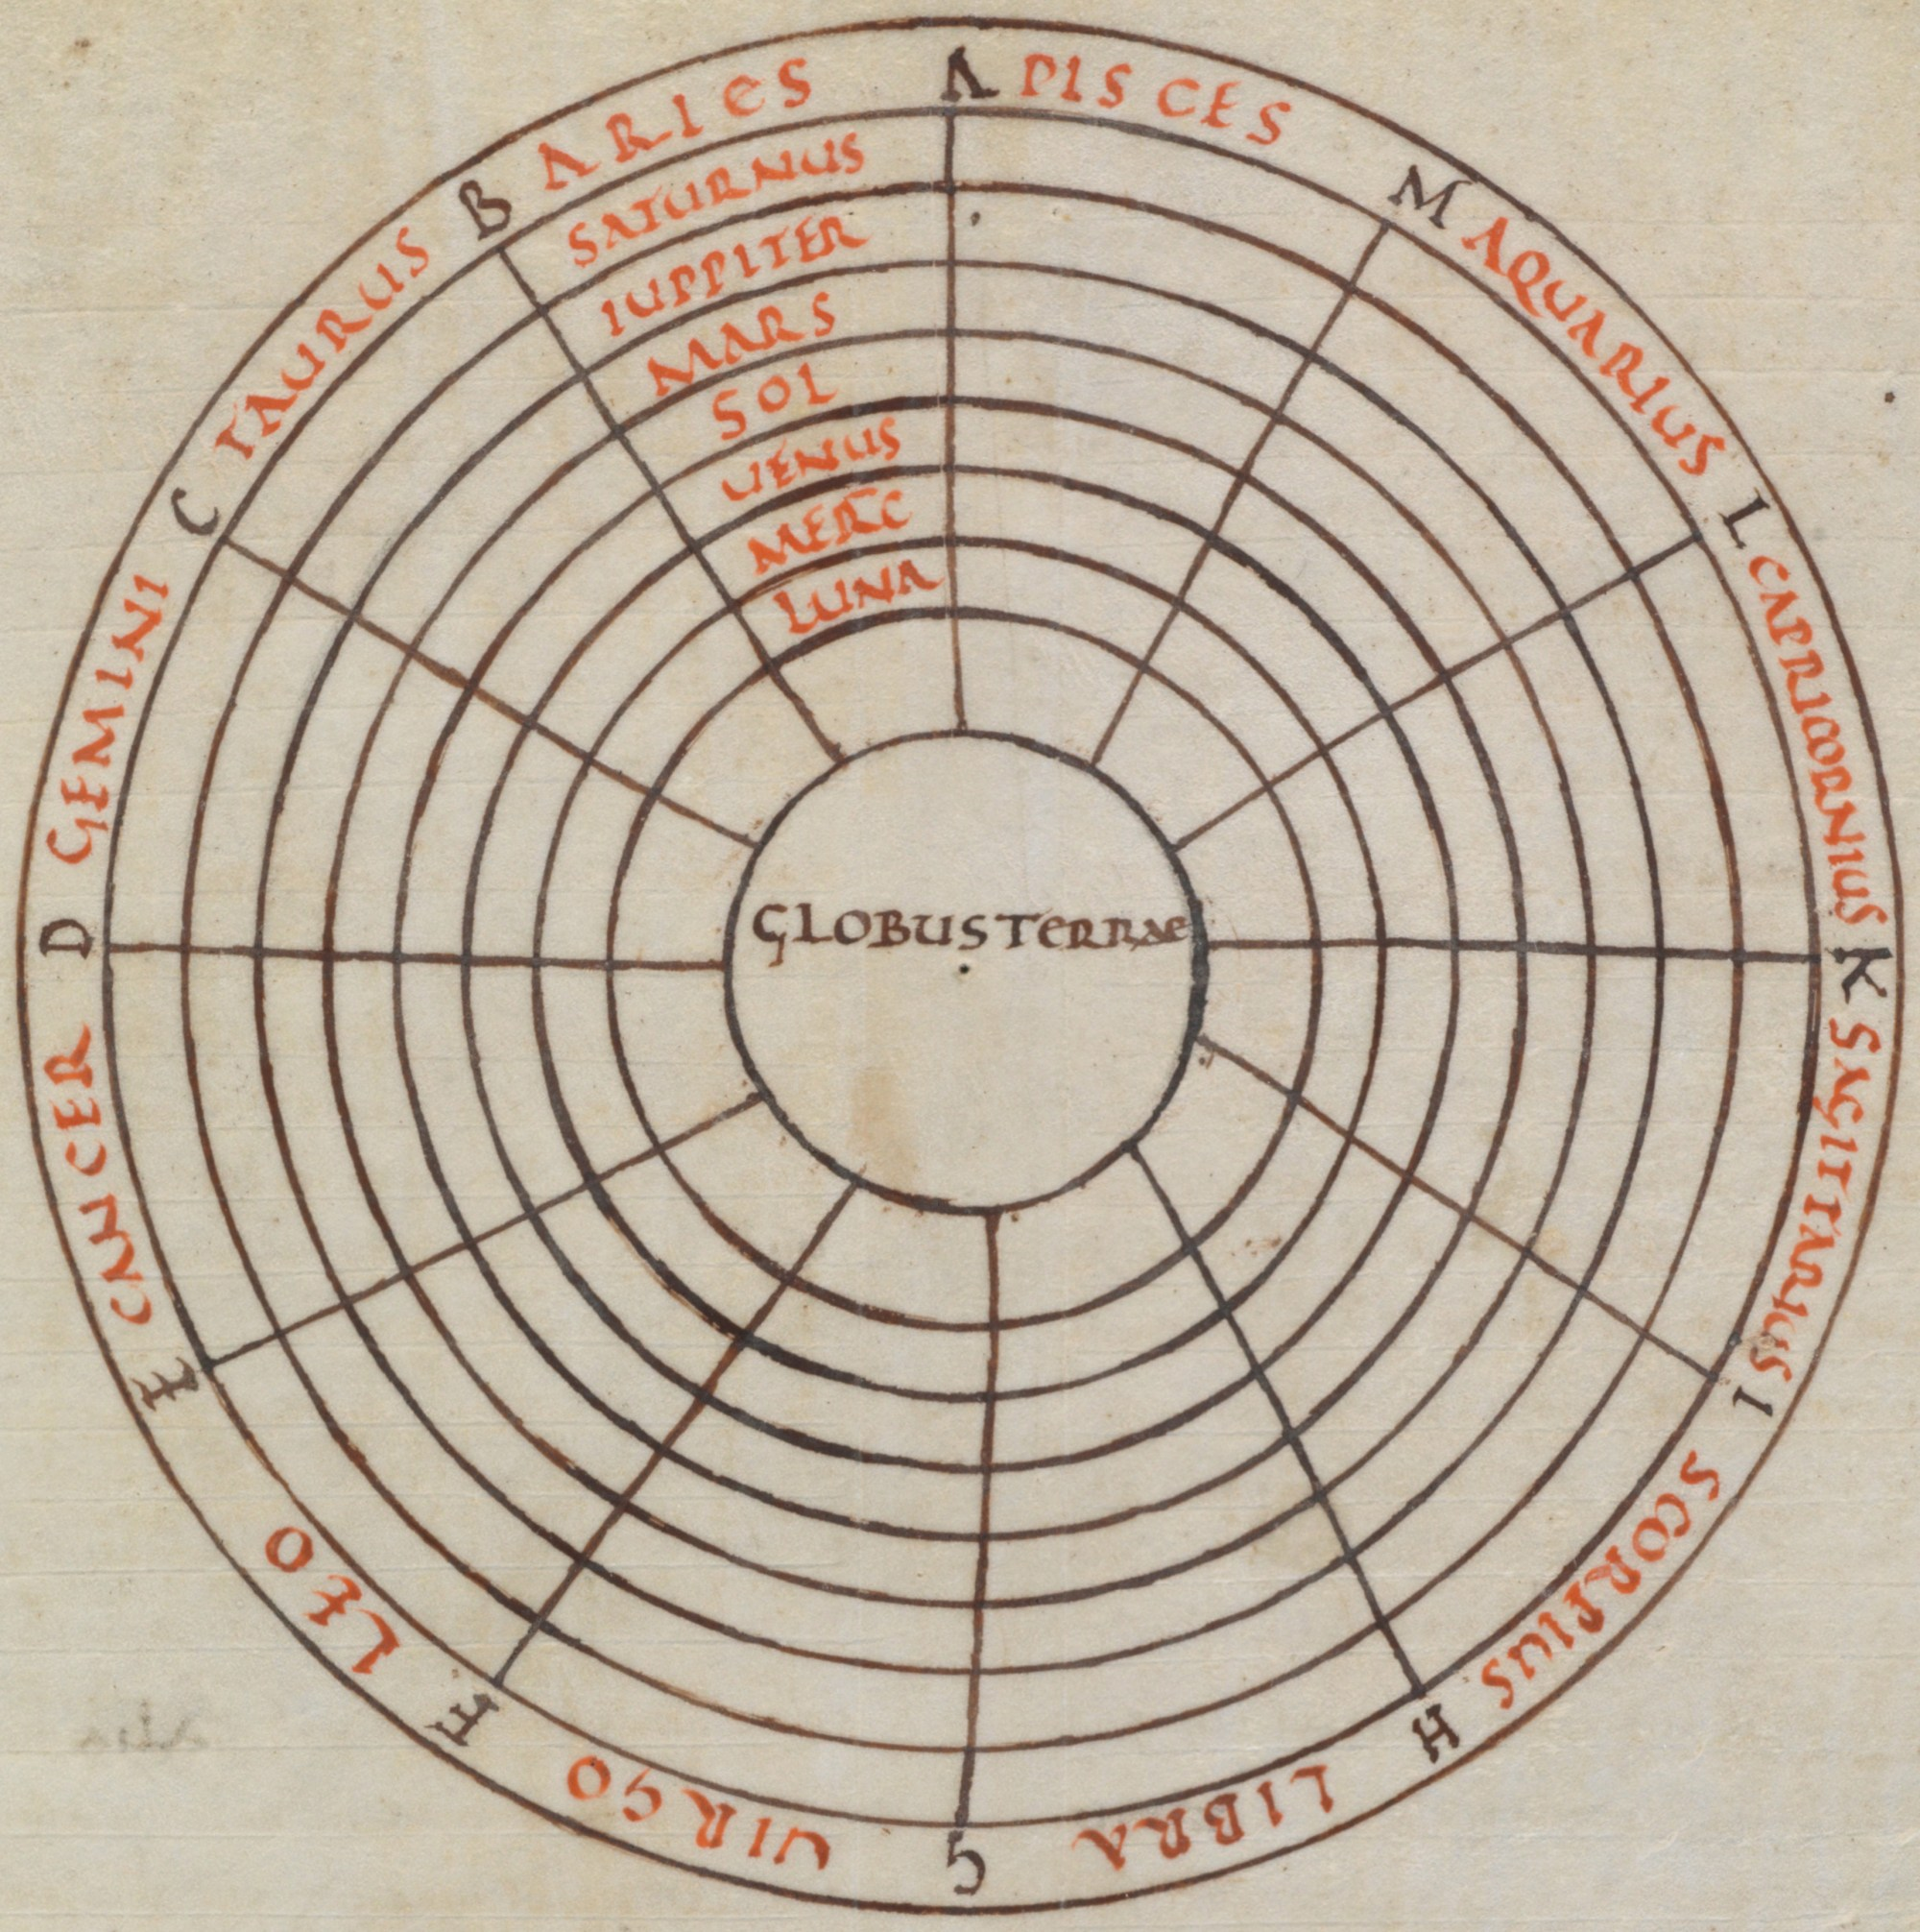 hight resolution of 9th century macrobian cosmic diagram showing the sphere of the earth at the center globus terrae